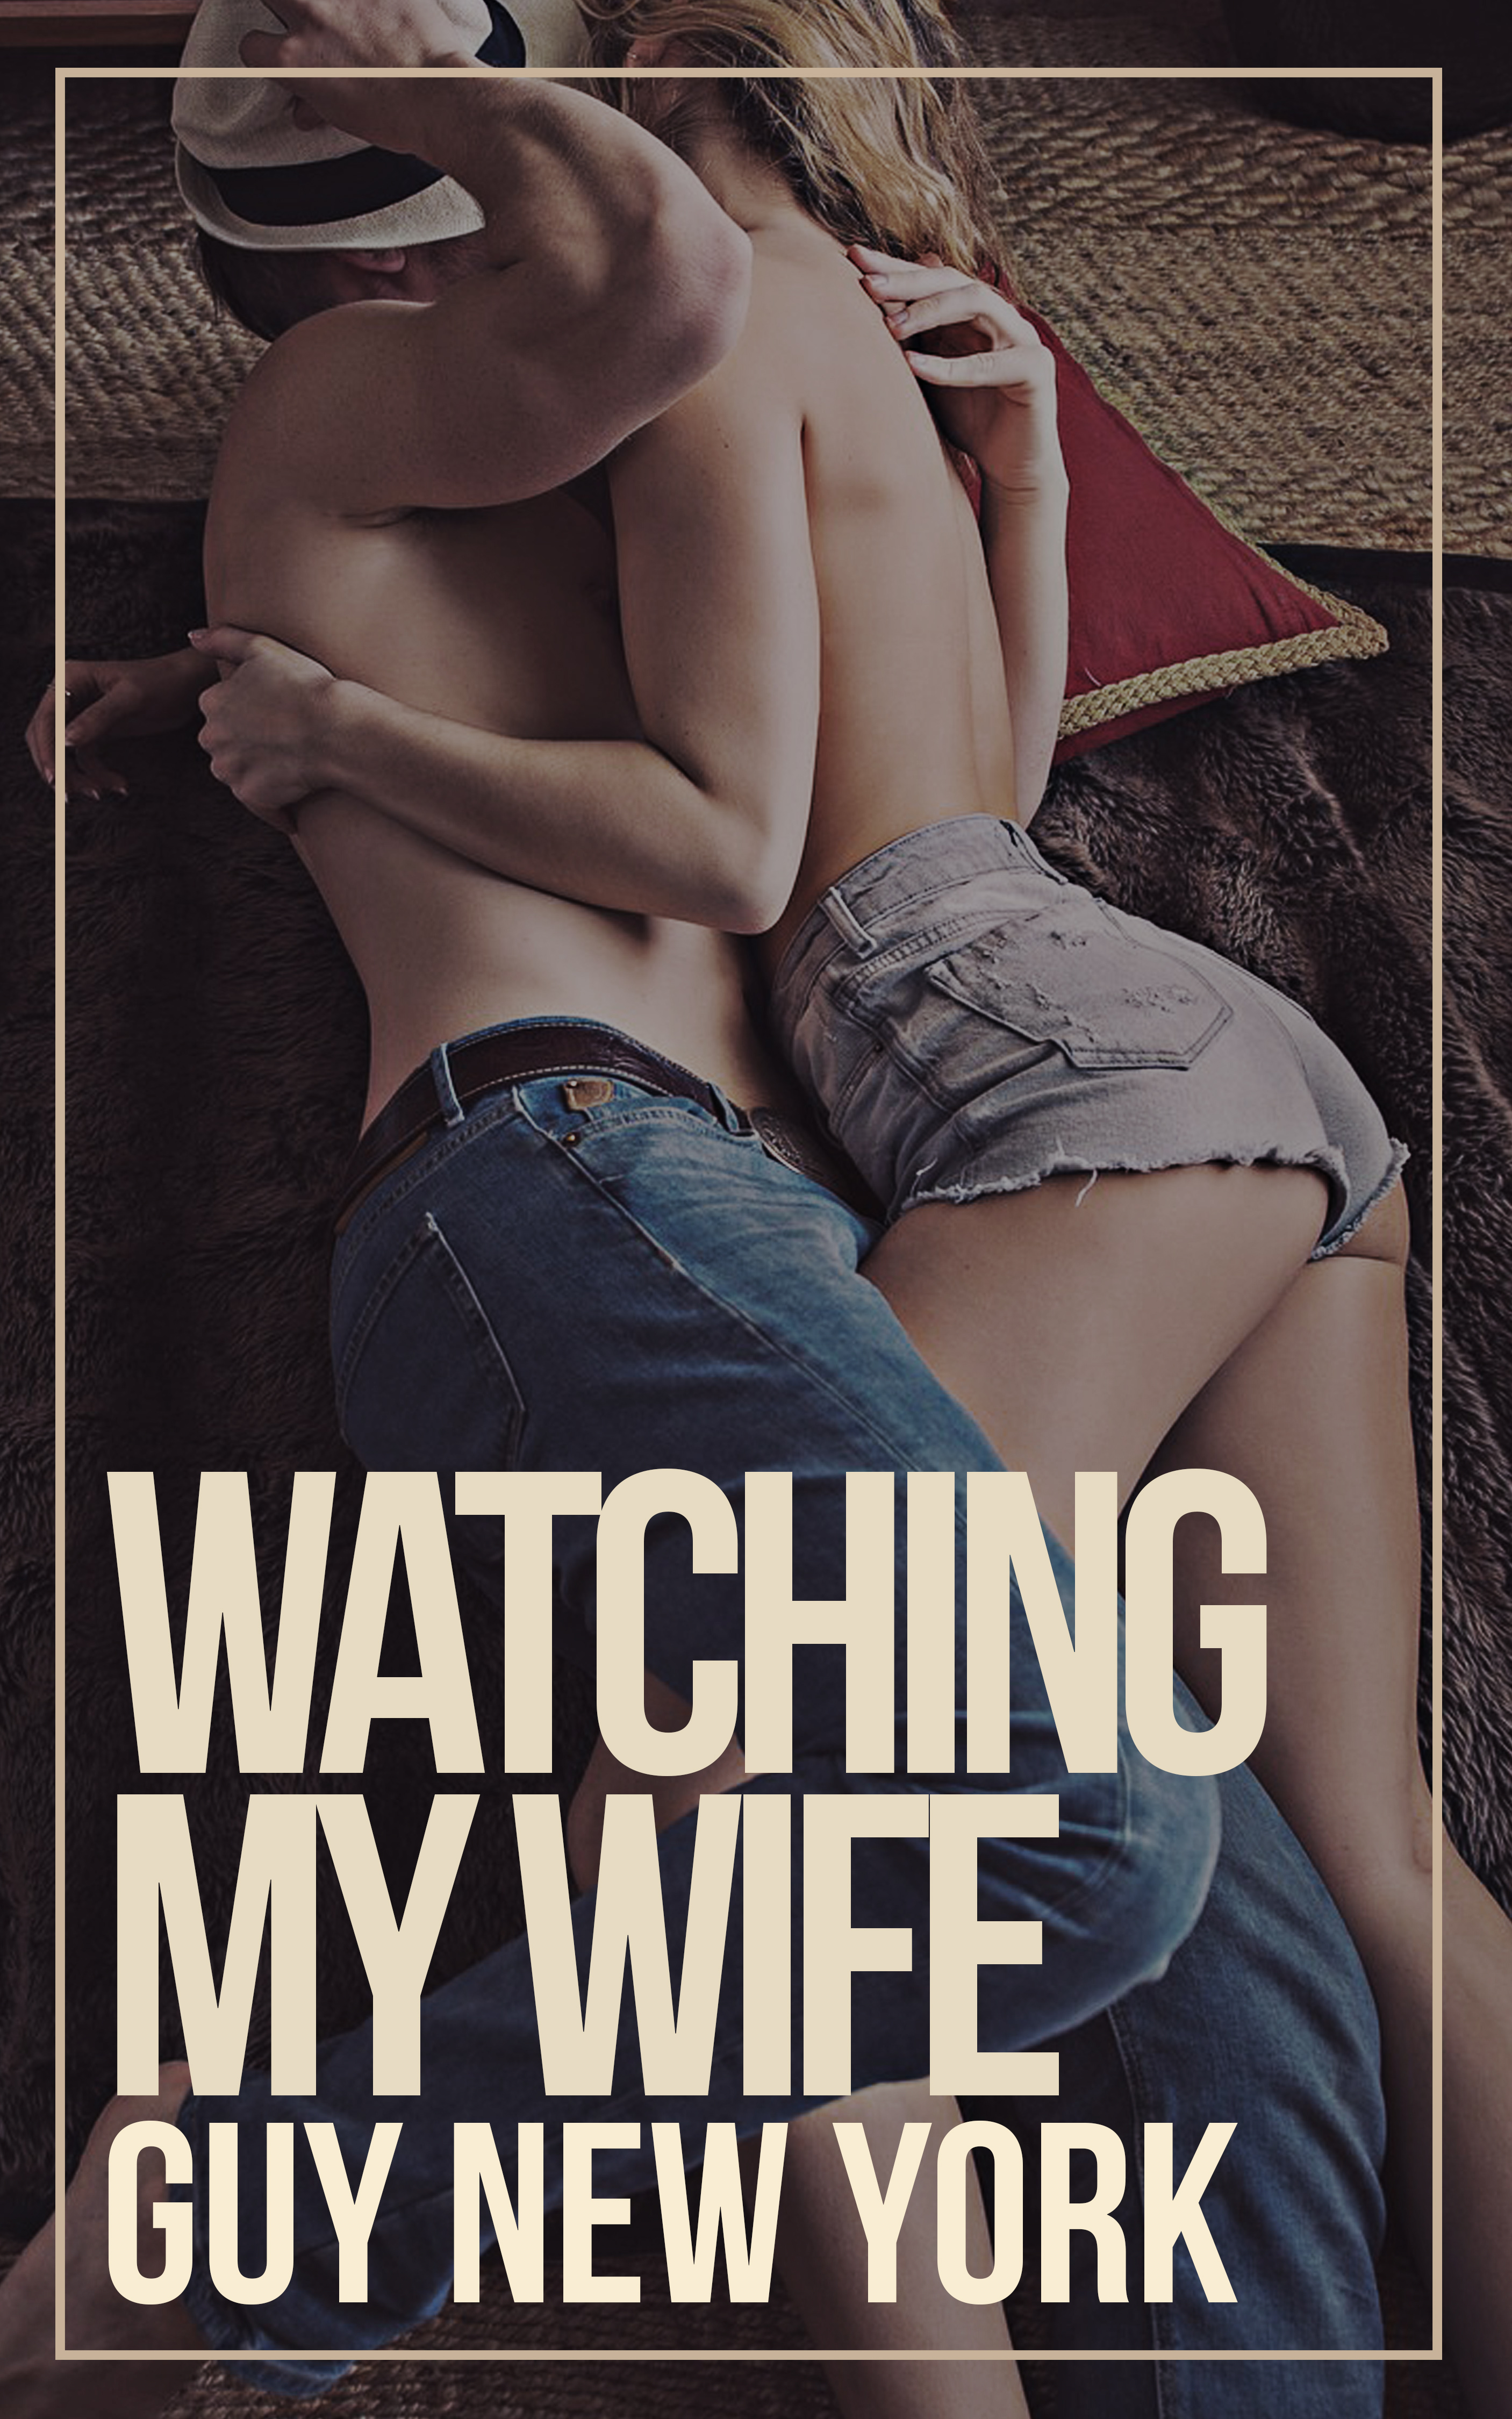 Watching My Wife, Cuckold Erotica